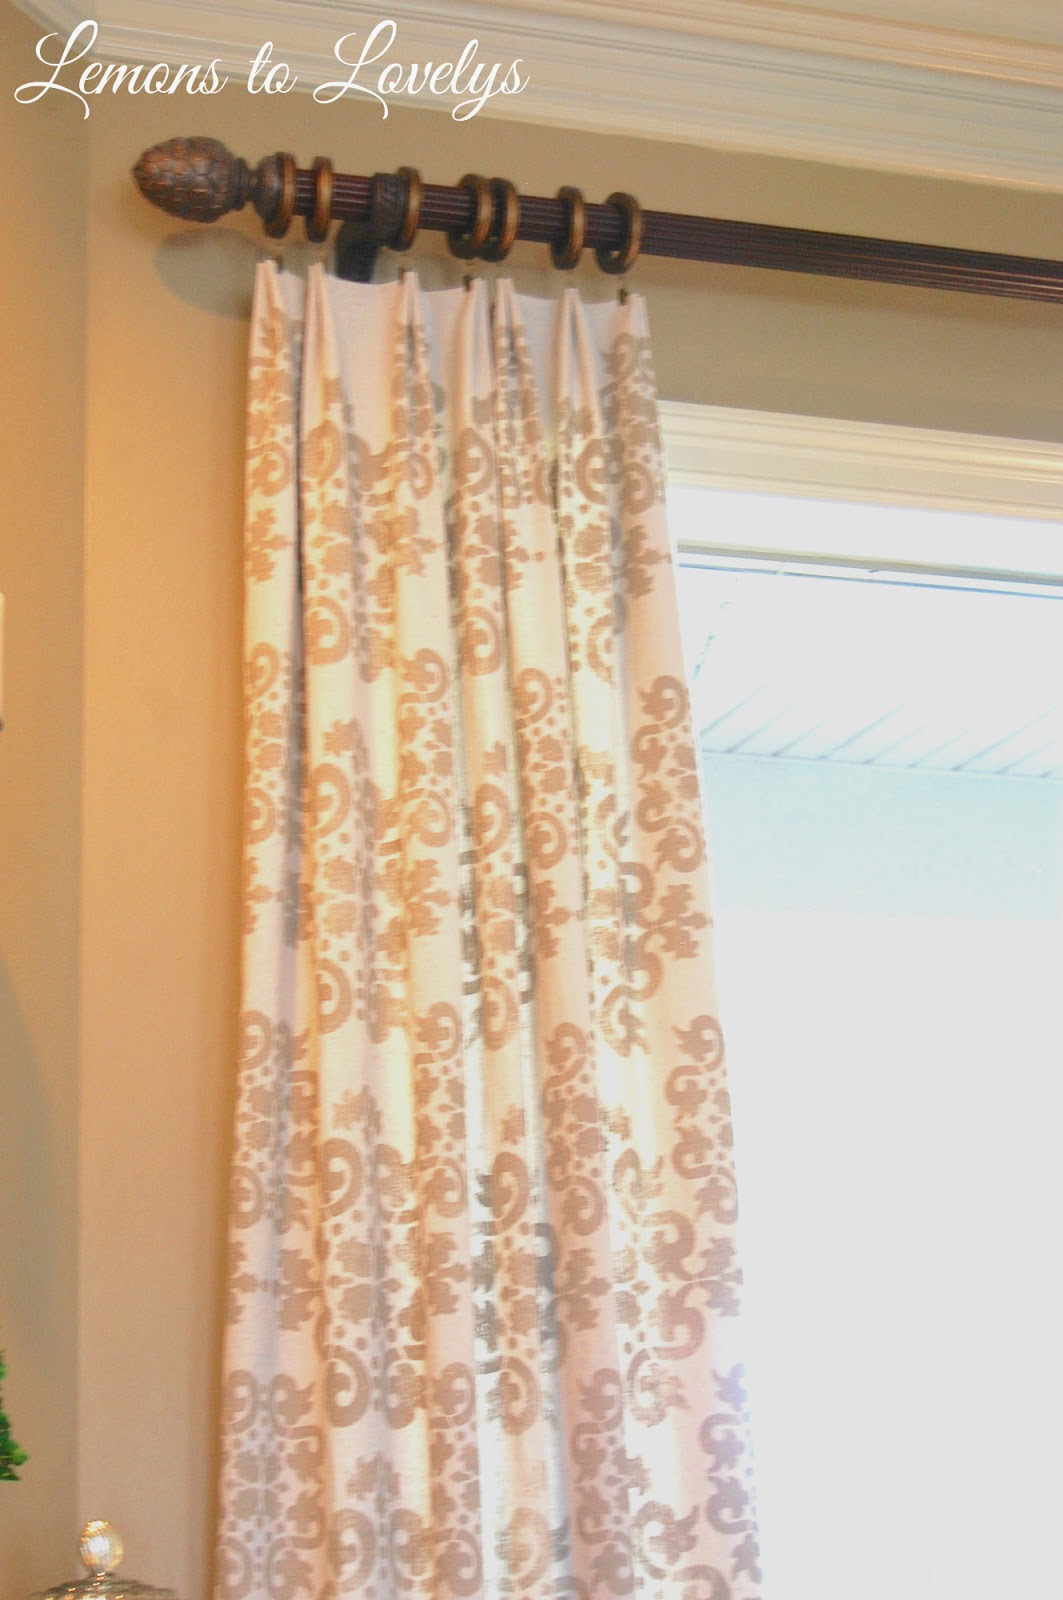 Ready Made Curtains 108 Drop Easy No Sew Drop Cloth Curtains With Pleats Lemons To Lovelys